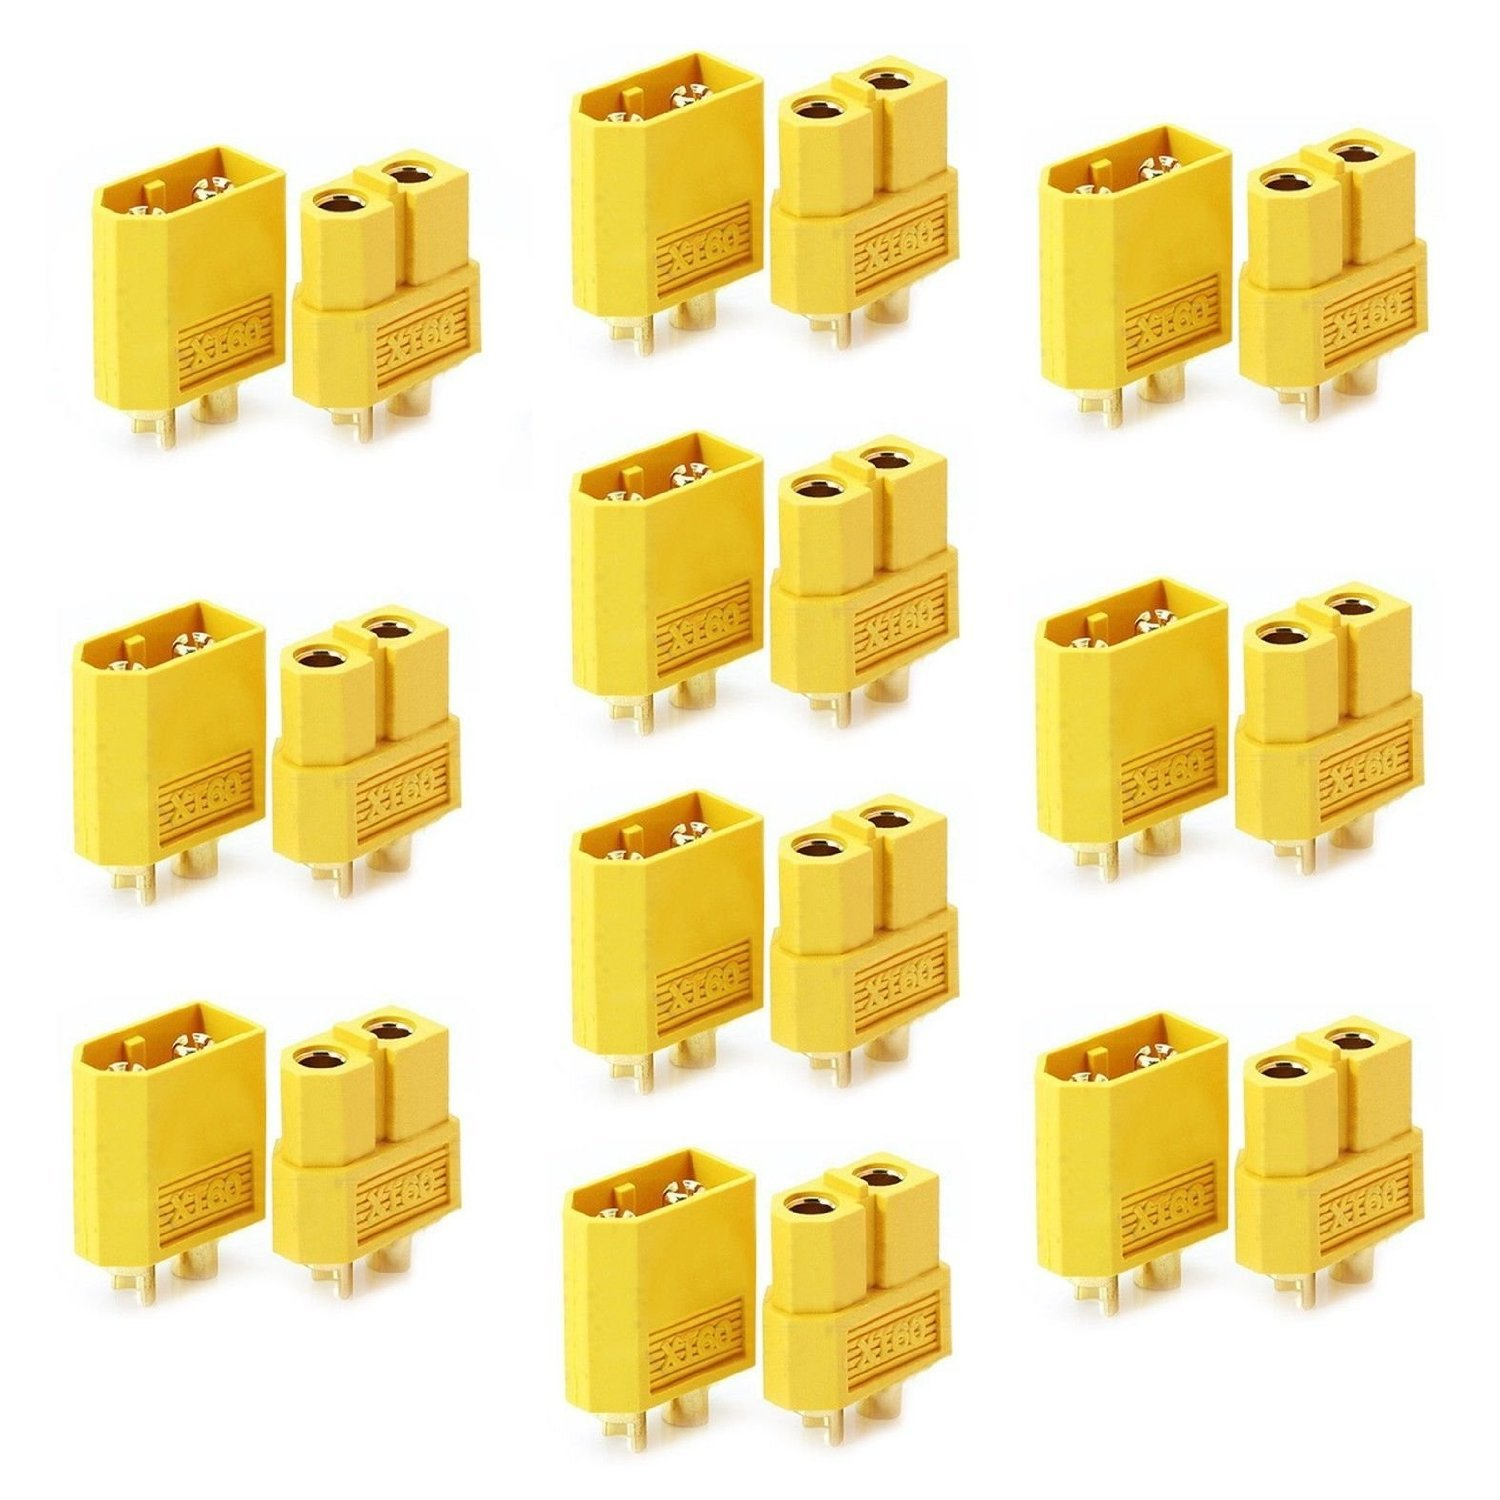 LHI 10 Pairs XT-60 XT60 Male Female Bullet Connectors Plugs For RC Lipo Battery